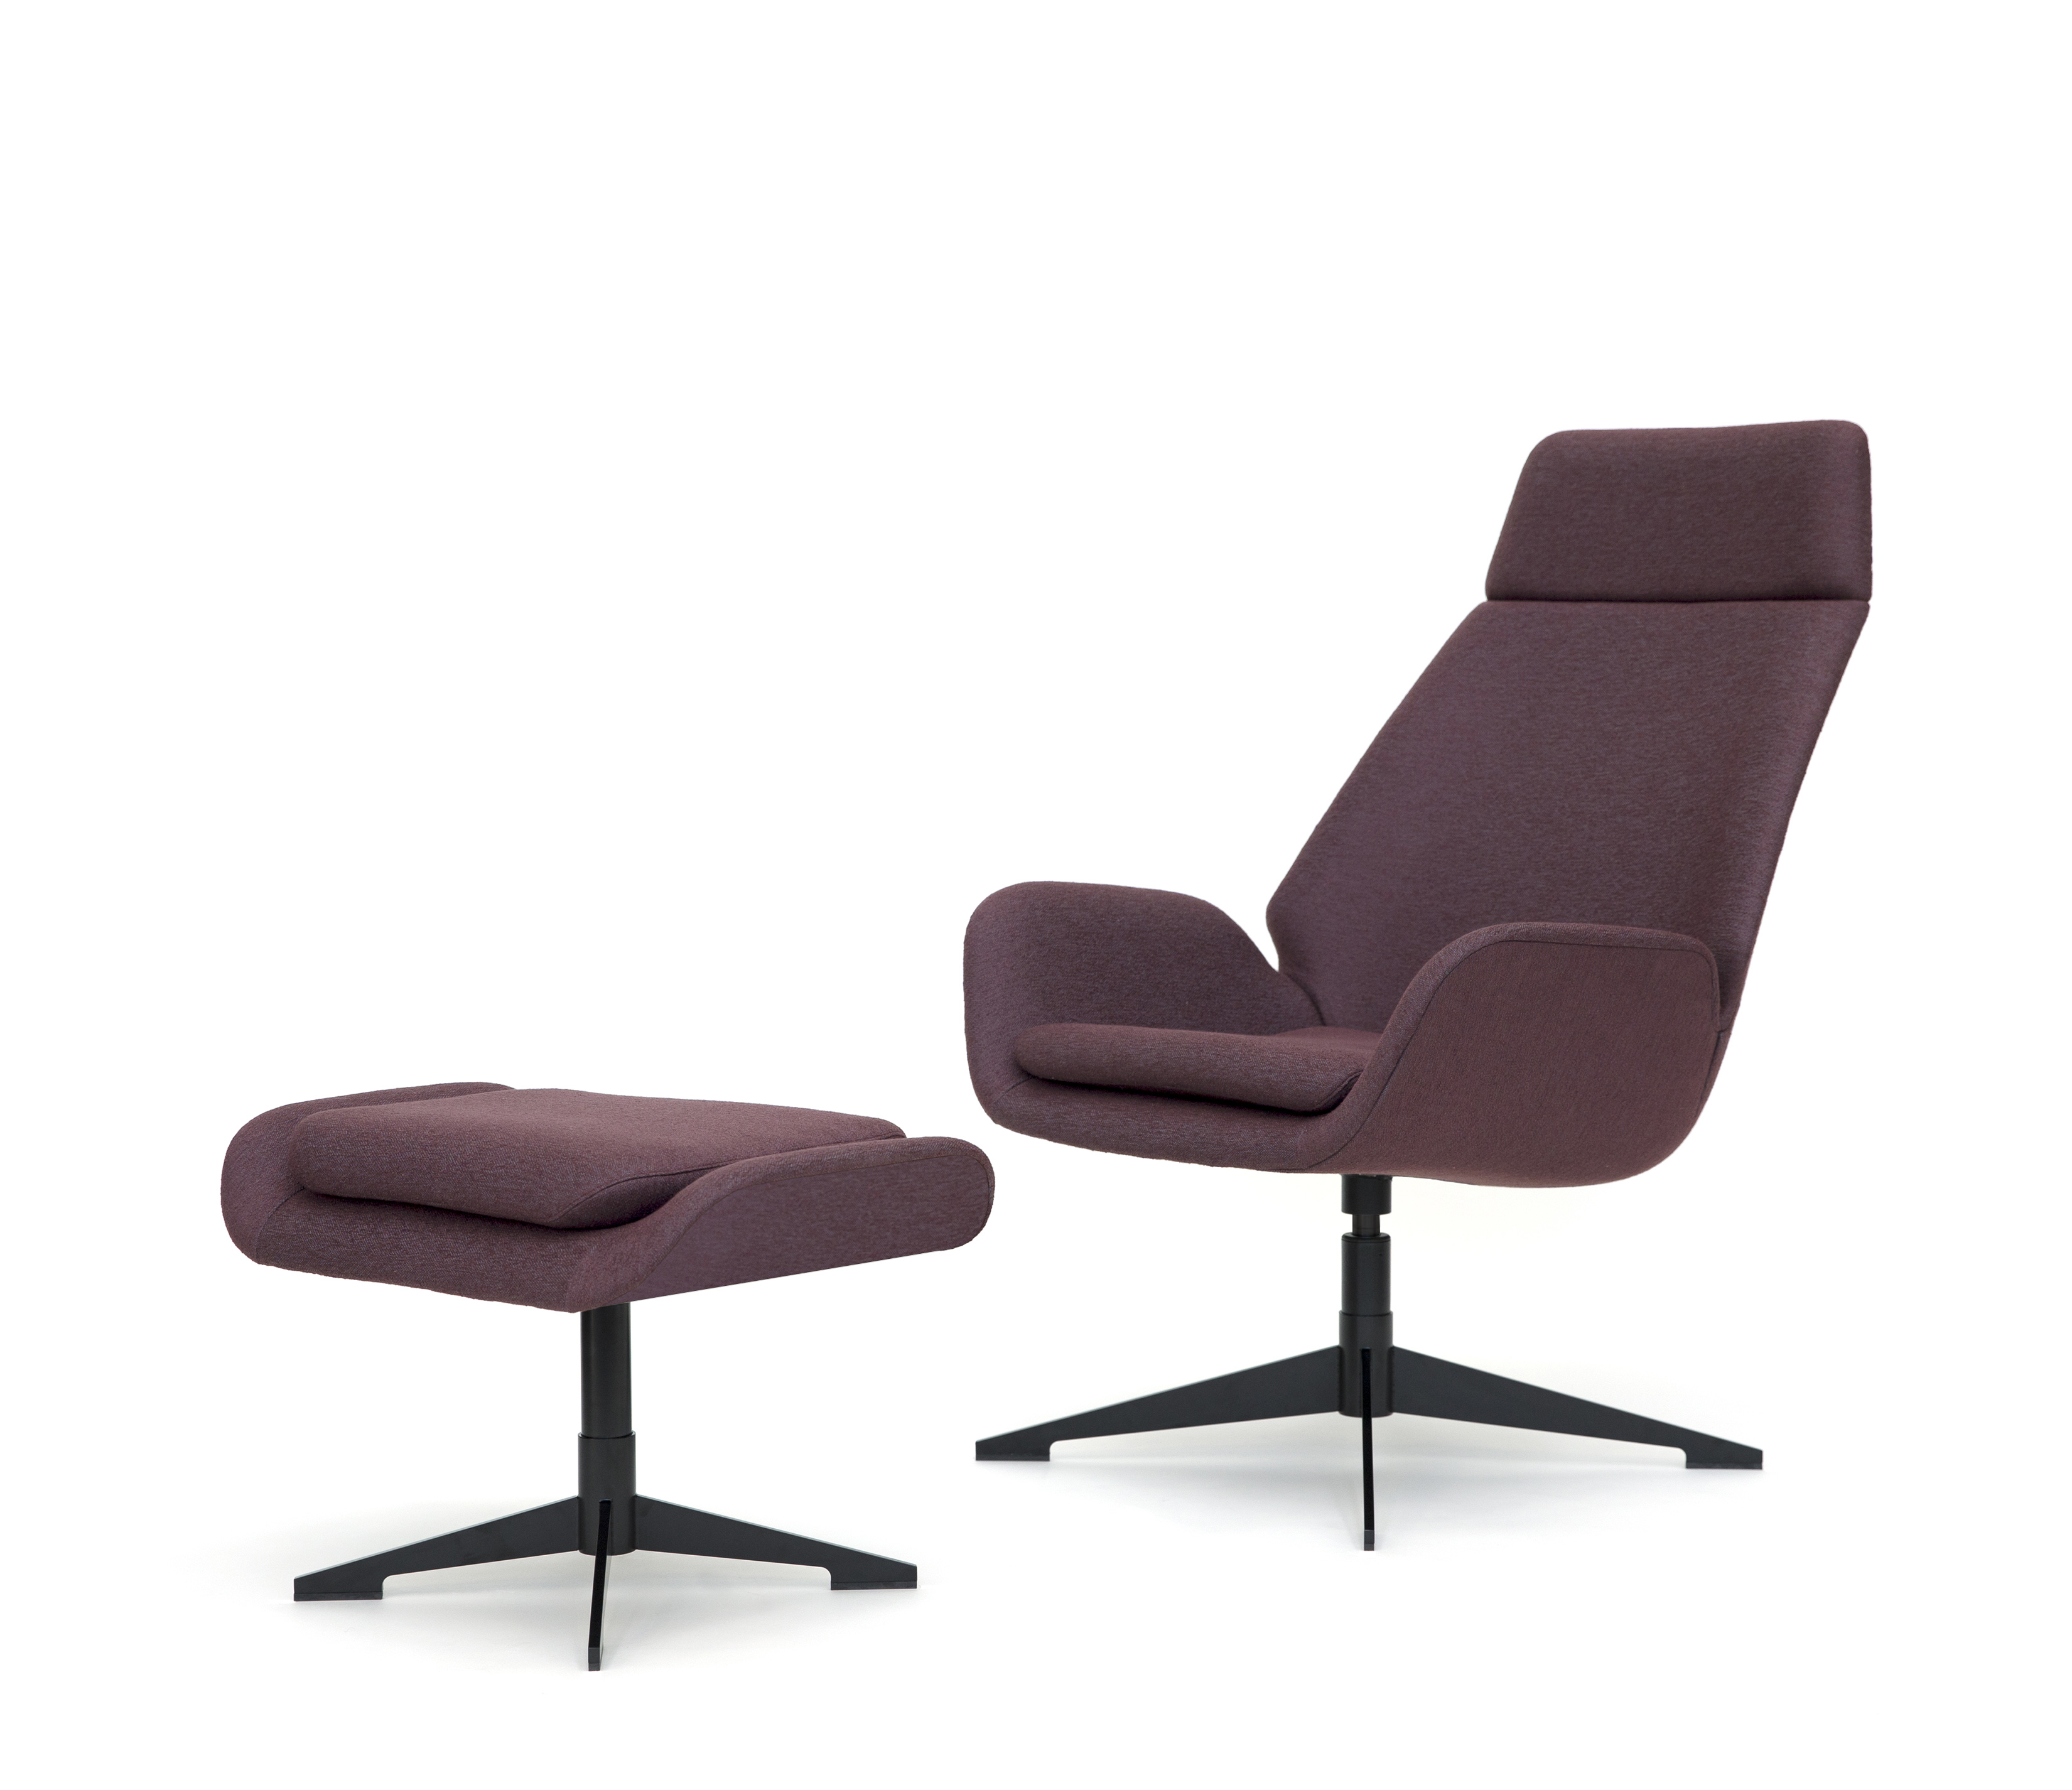 Marvelous Conexus By Hbf Archello Caraccident5 Cool Chair Designs And Ideas Caraccident5Info